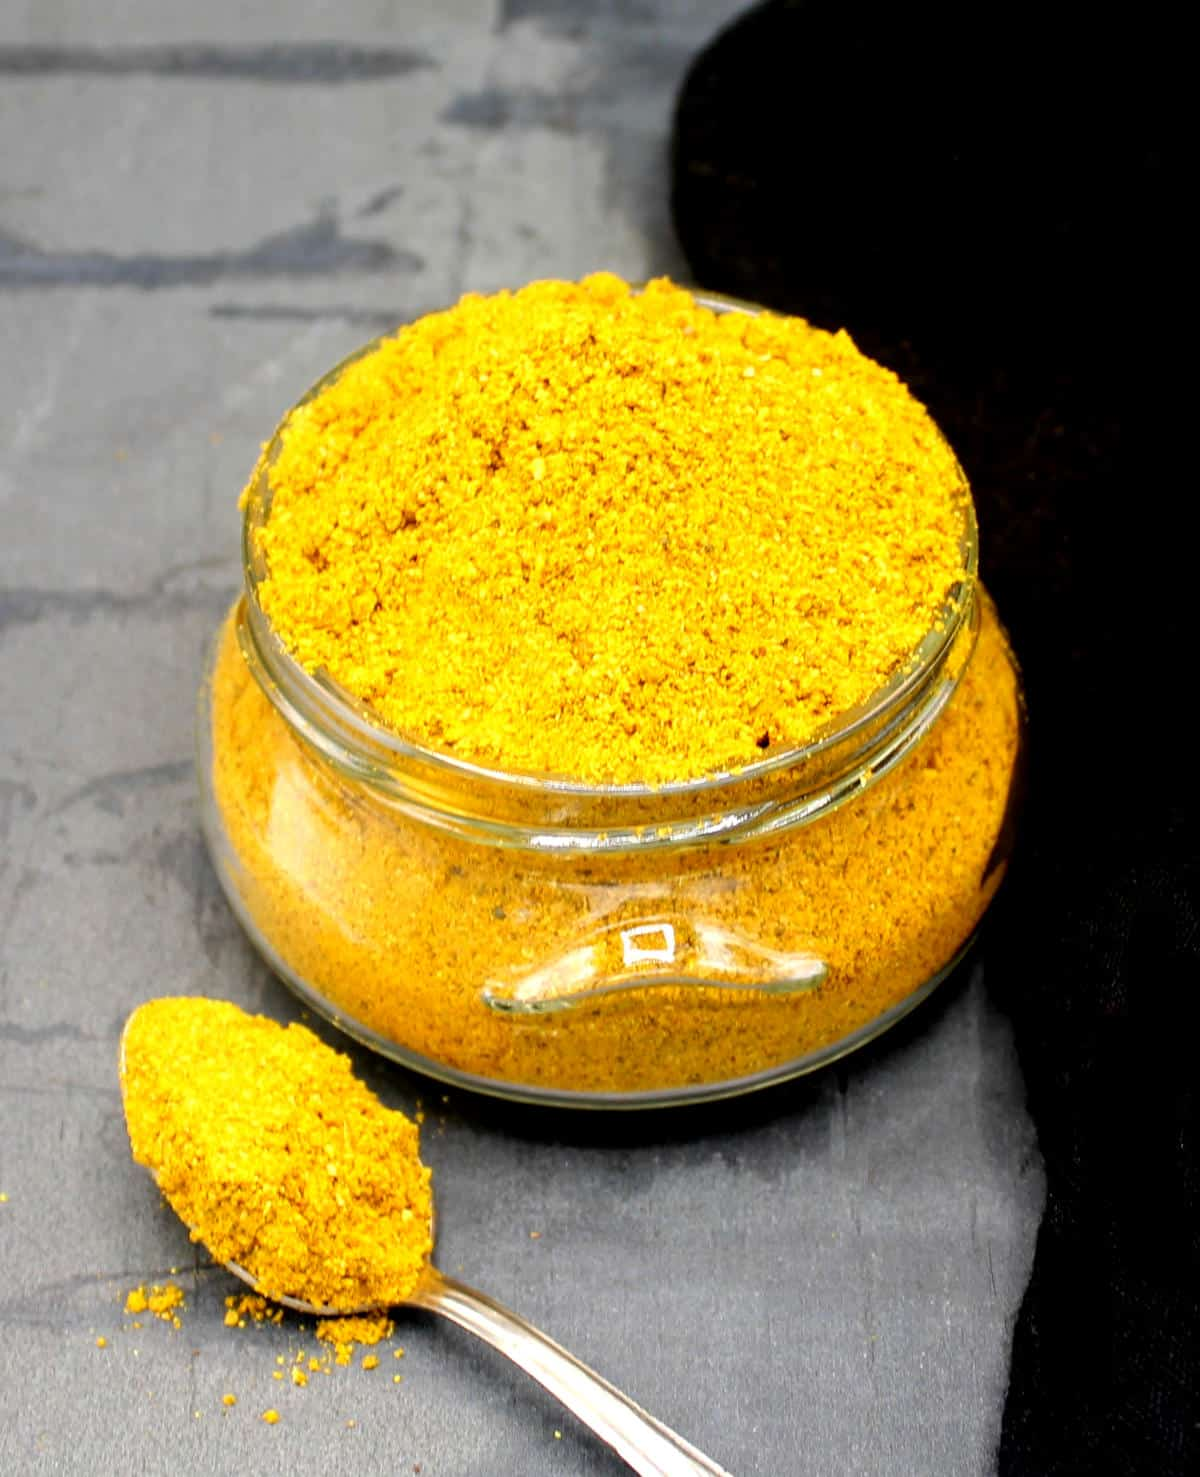 Photo of bright yellow curry powder in a glass jar with a spoon next to it.